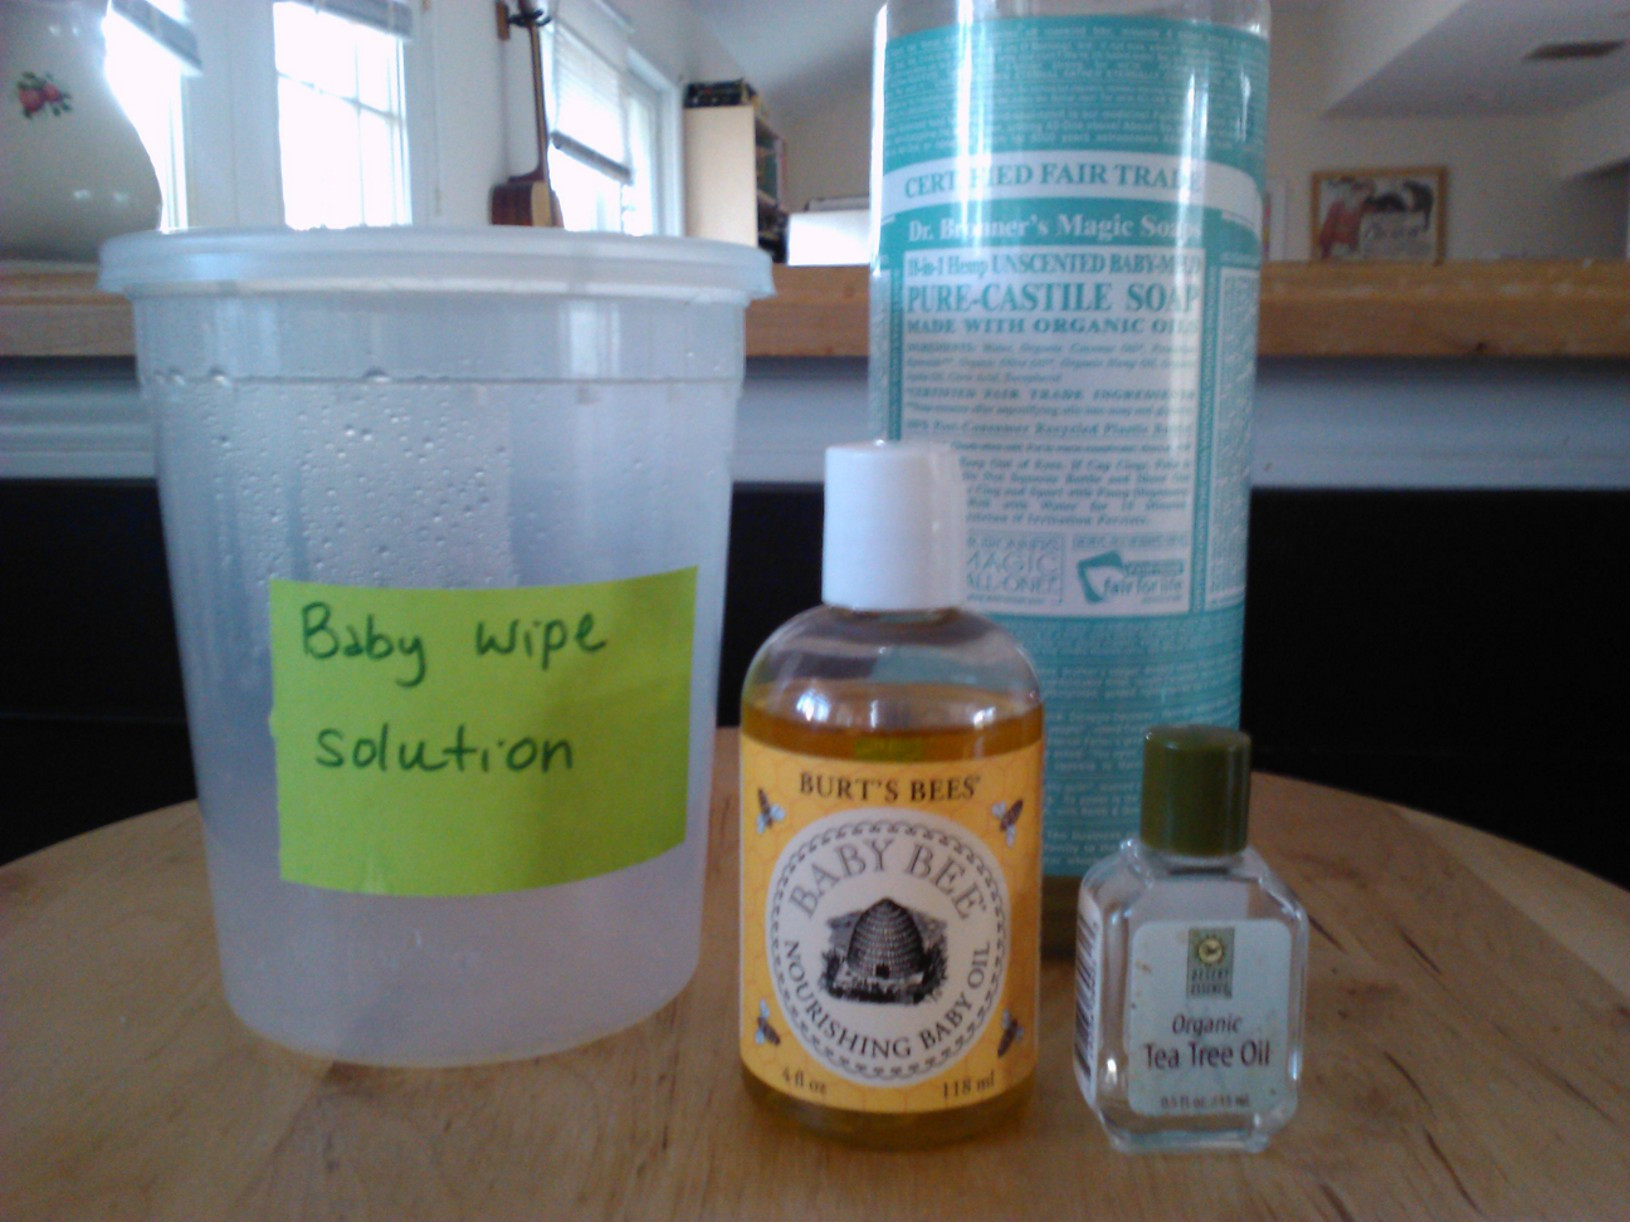 Best ideas about DIY Baby Wipes Solution . Save or Pin Homemade Baby Wipe Solution Now.